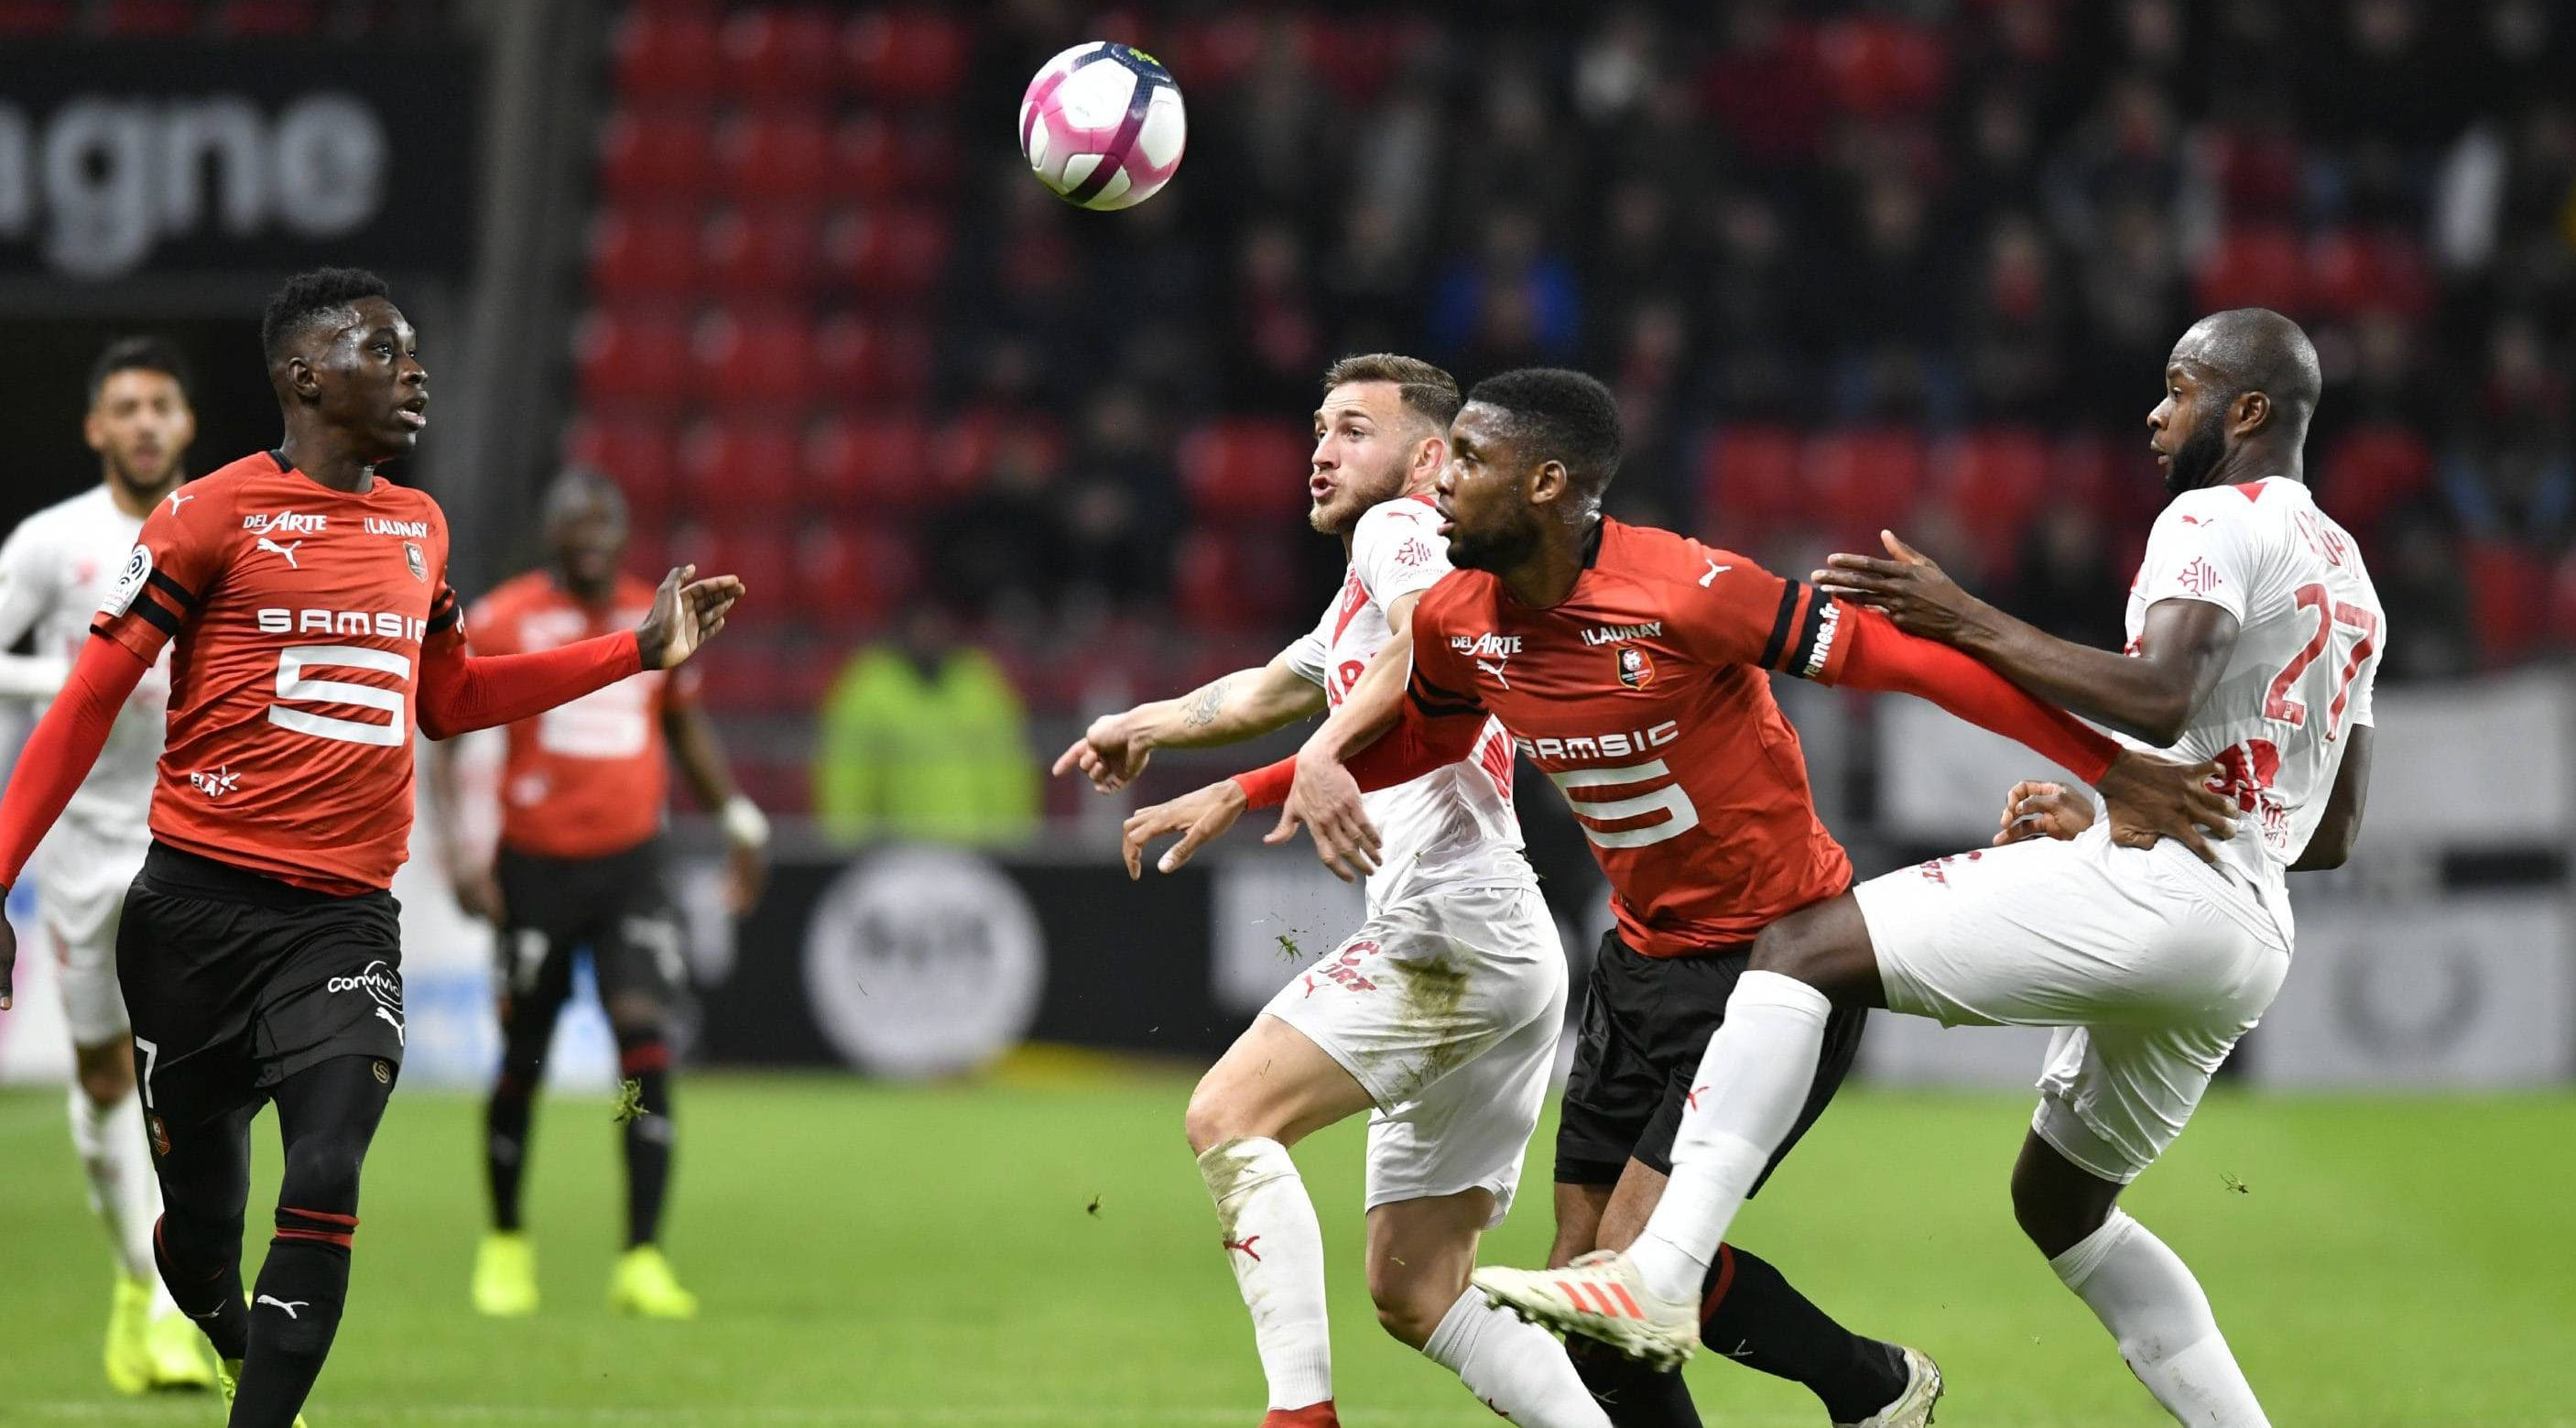 Nimes vs Rennes Betting Predictions